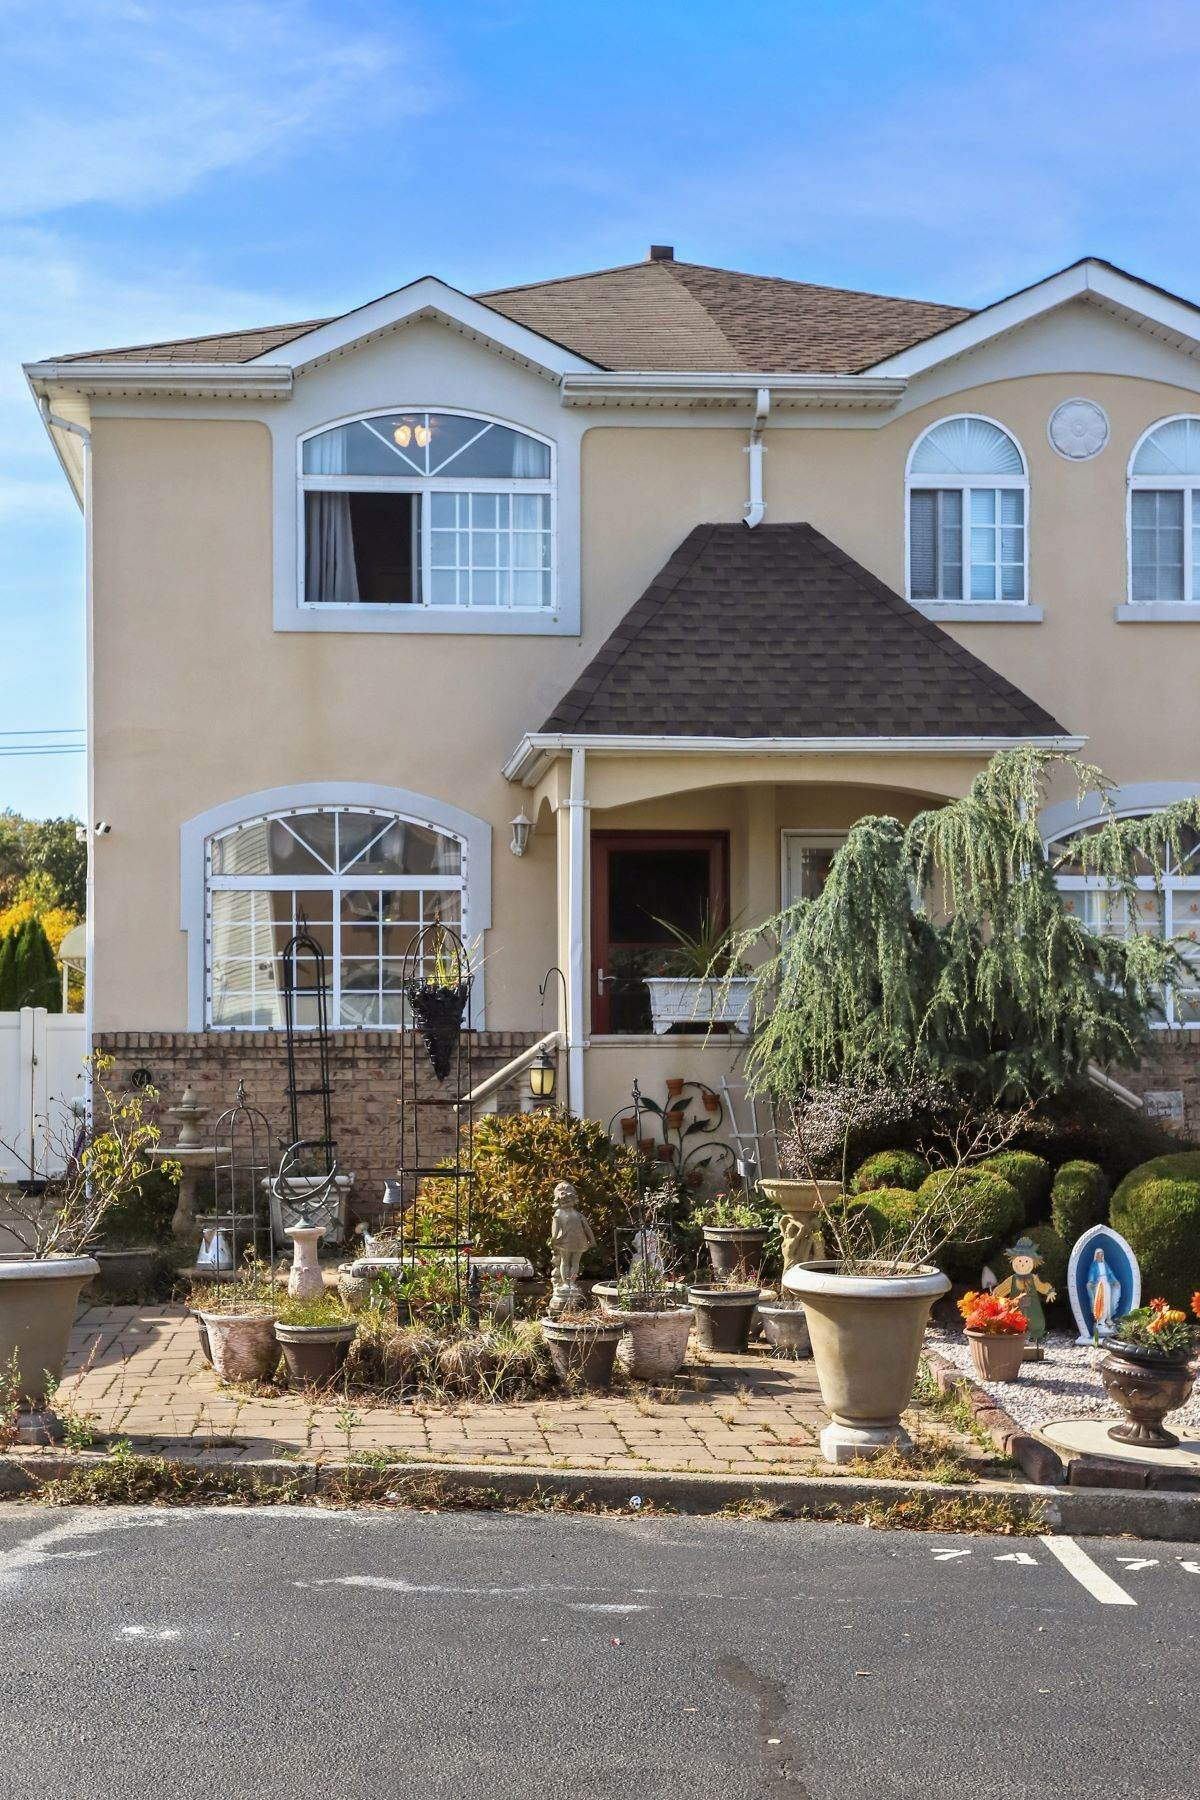 Single Family Homes for Sale at Semi-Detached Colonial in Private Development 74 Salamander Court Staten Island, New York 10309 United States